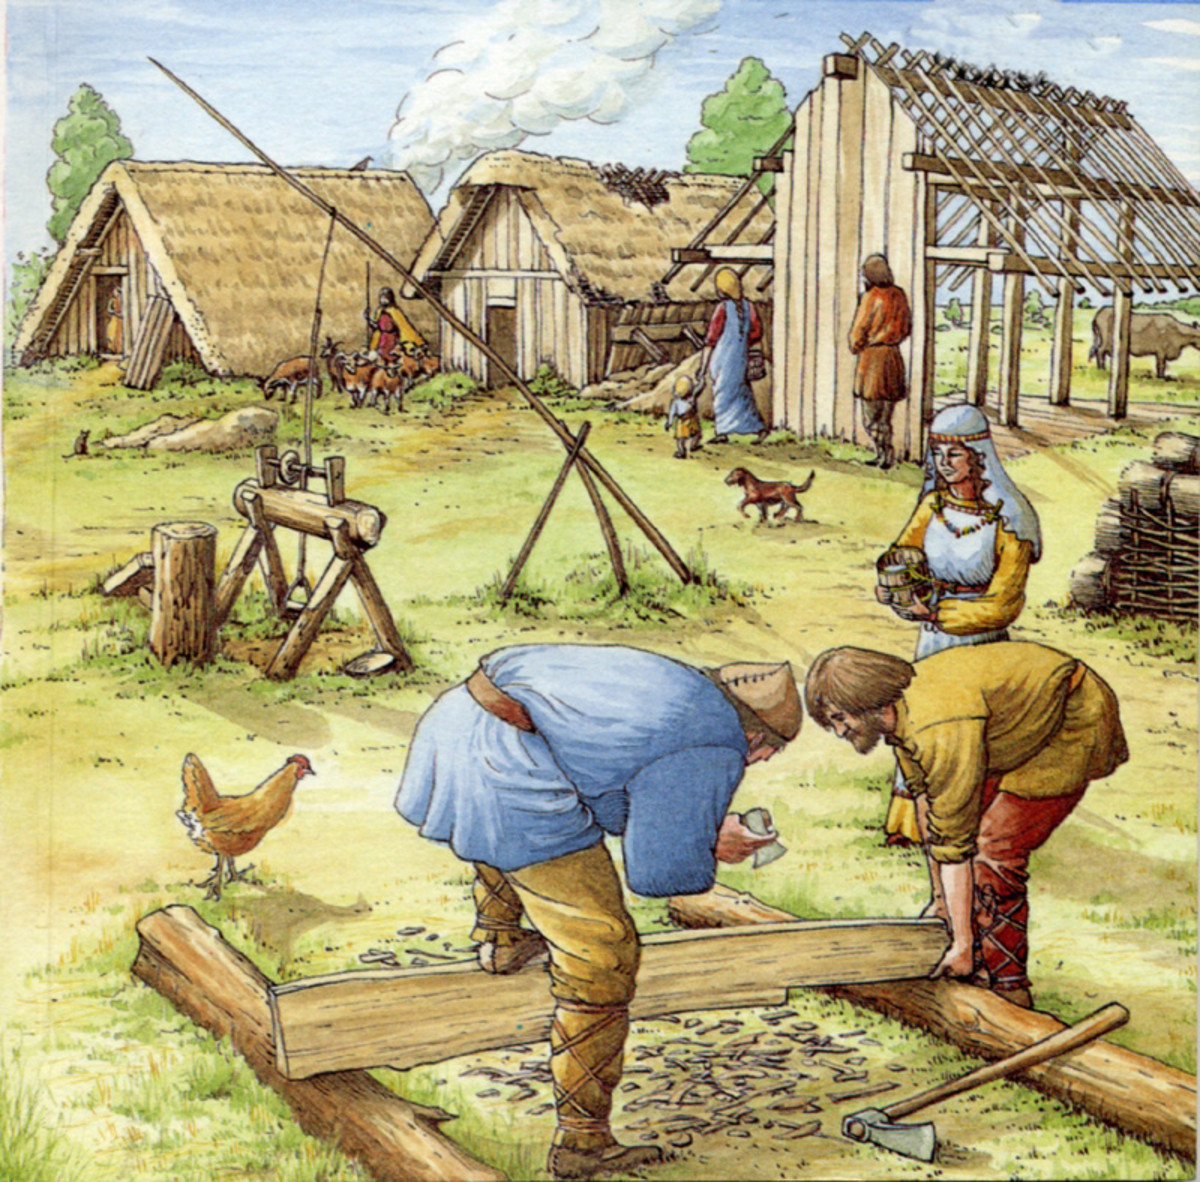 Building an early Anglian settlement - settlers from Angeln came into a largely waterlogged and marshy east, much as where they'd come from and wished for better